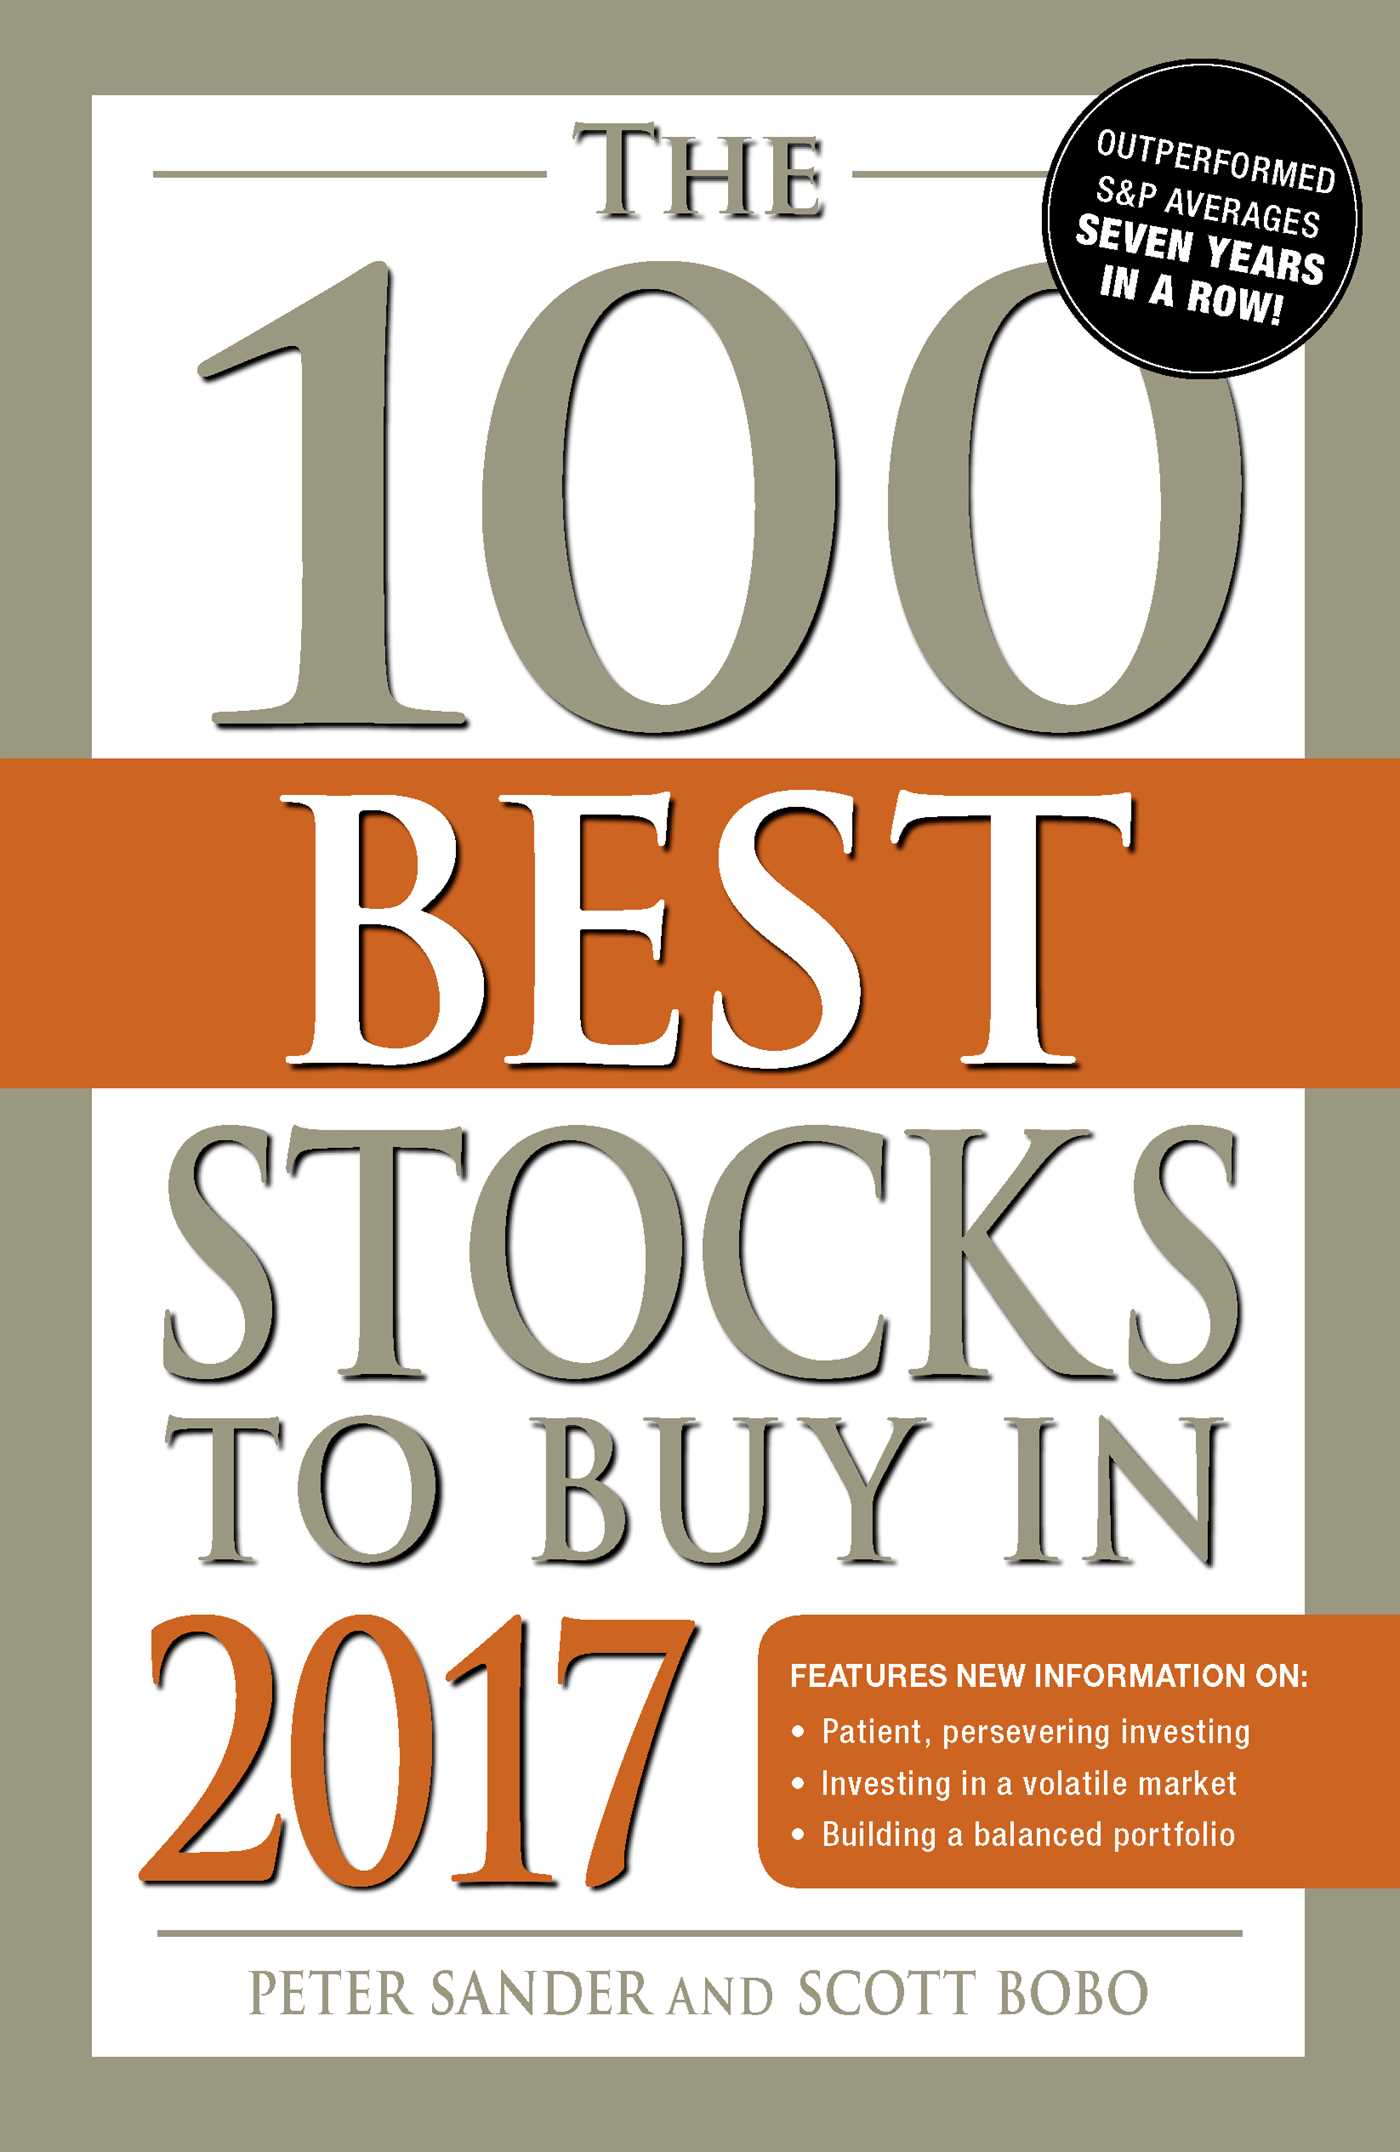 The 100 best stocks to buy in 2017 9781440596025 hr